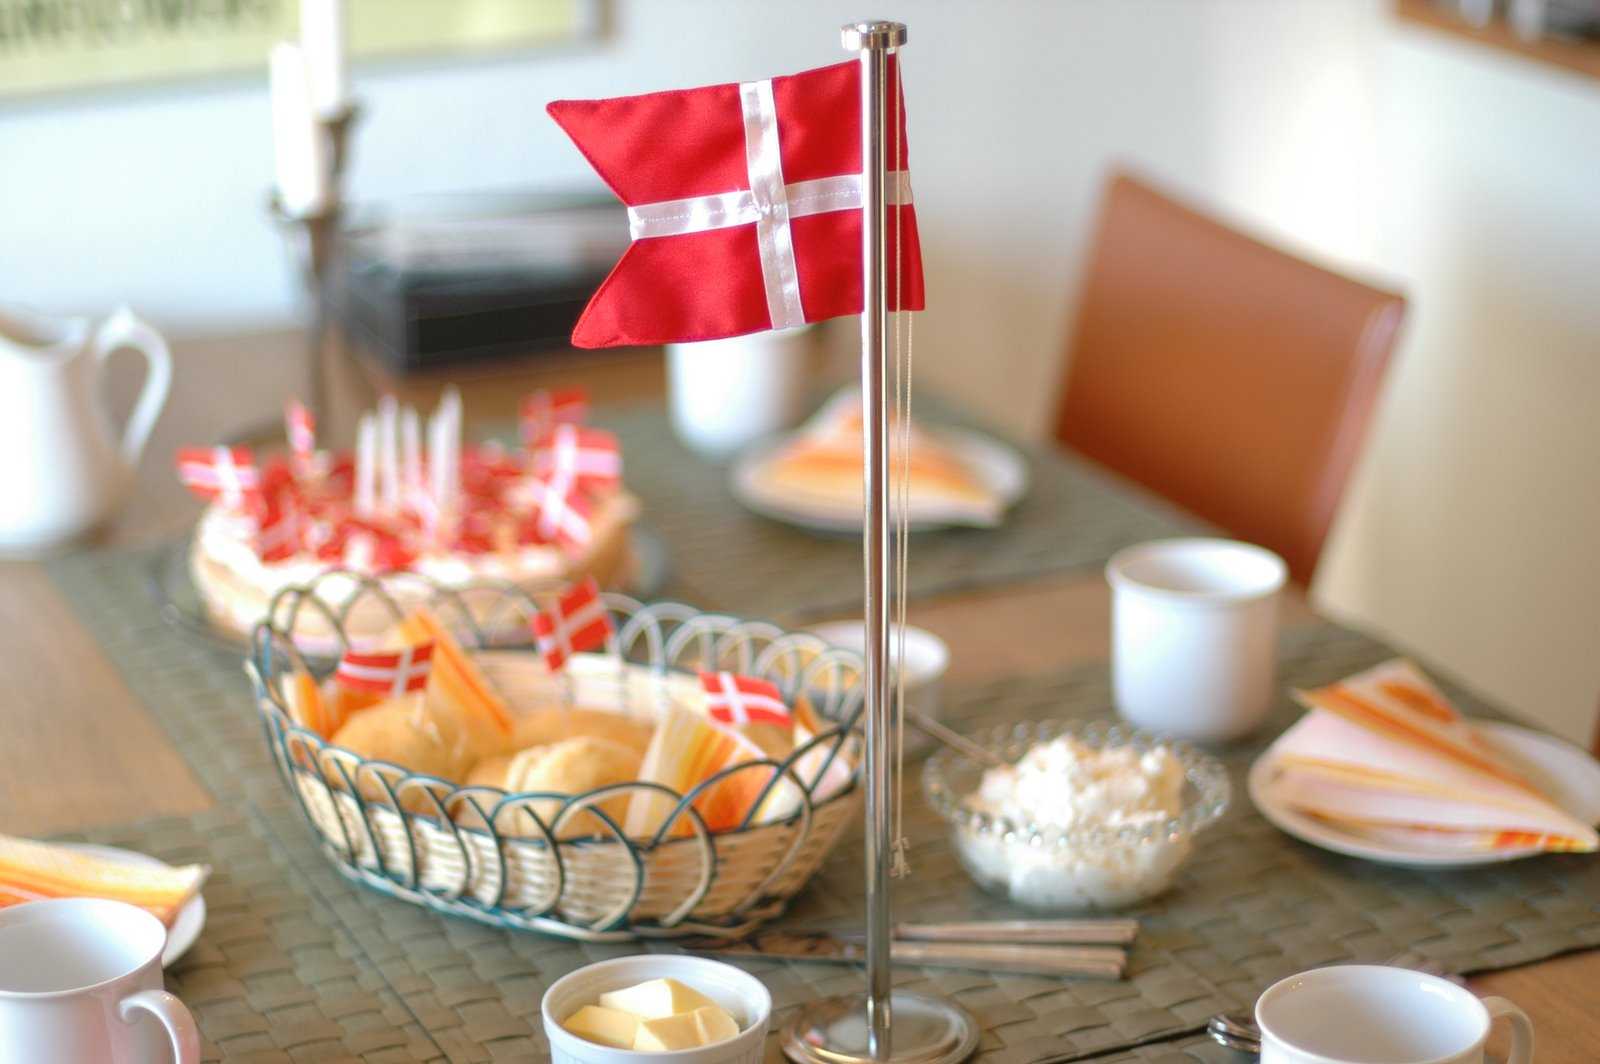 """an analysis of danish culture and tradition System of danish public education is facing cultural and linguistic diversity every   course – familiar from the analysis of overall political debates in the wp1   standing tradition of creating so-called """"free schools"""", which are independent but ."""